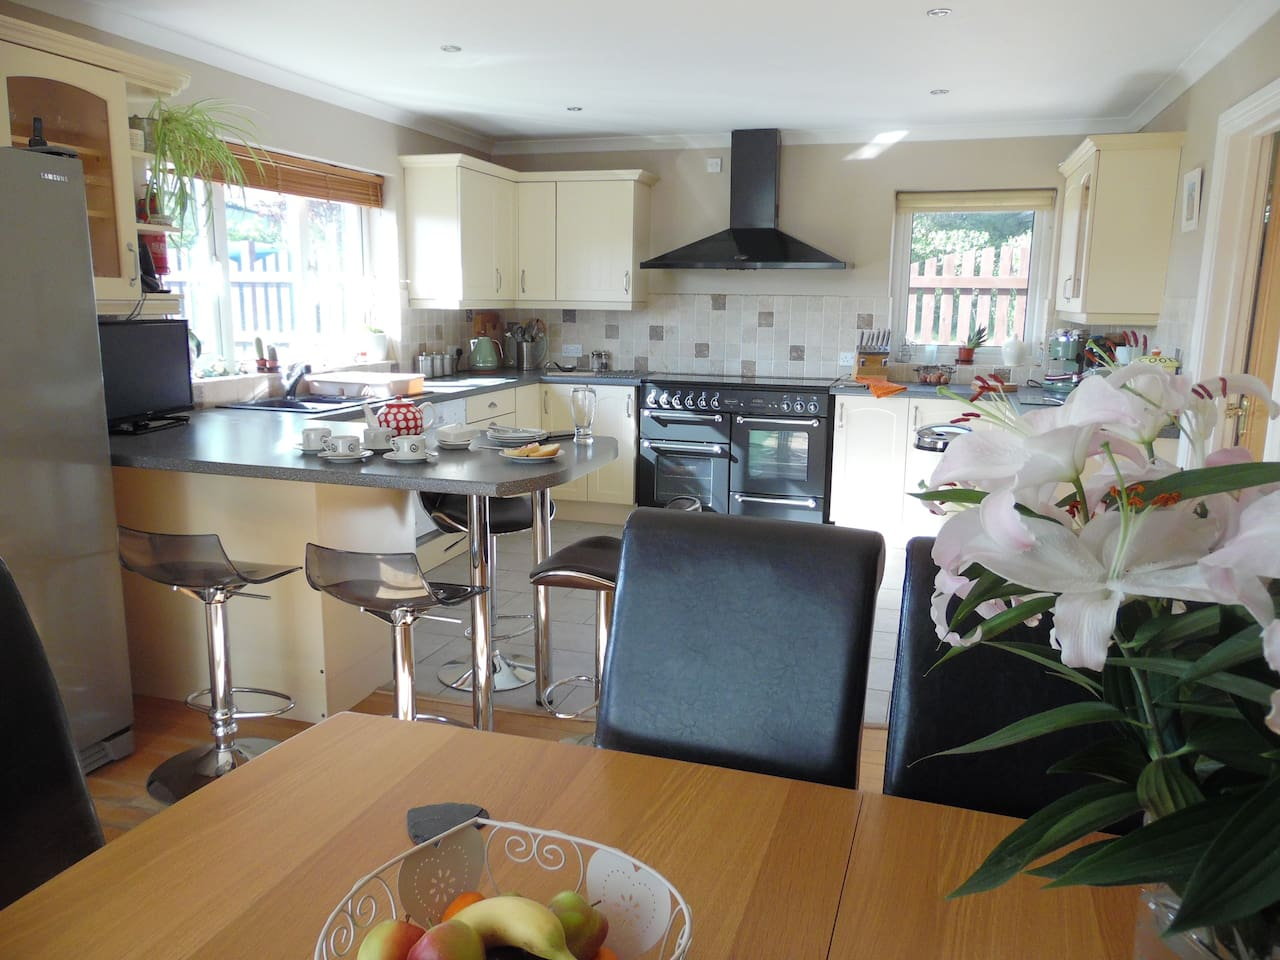 Cook up a treat in the fully equipped kitchen